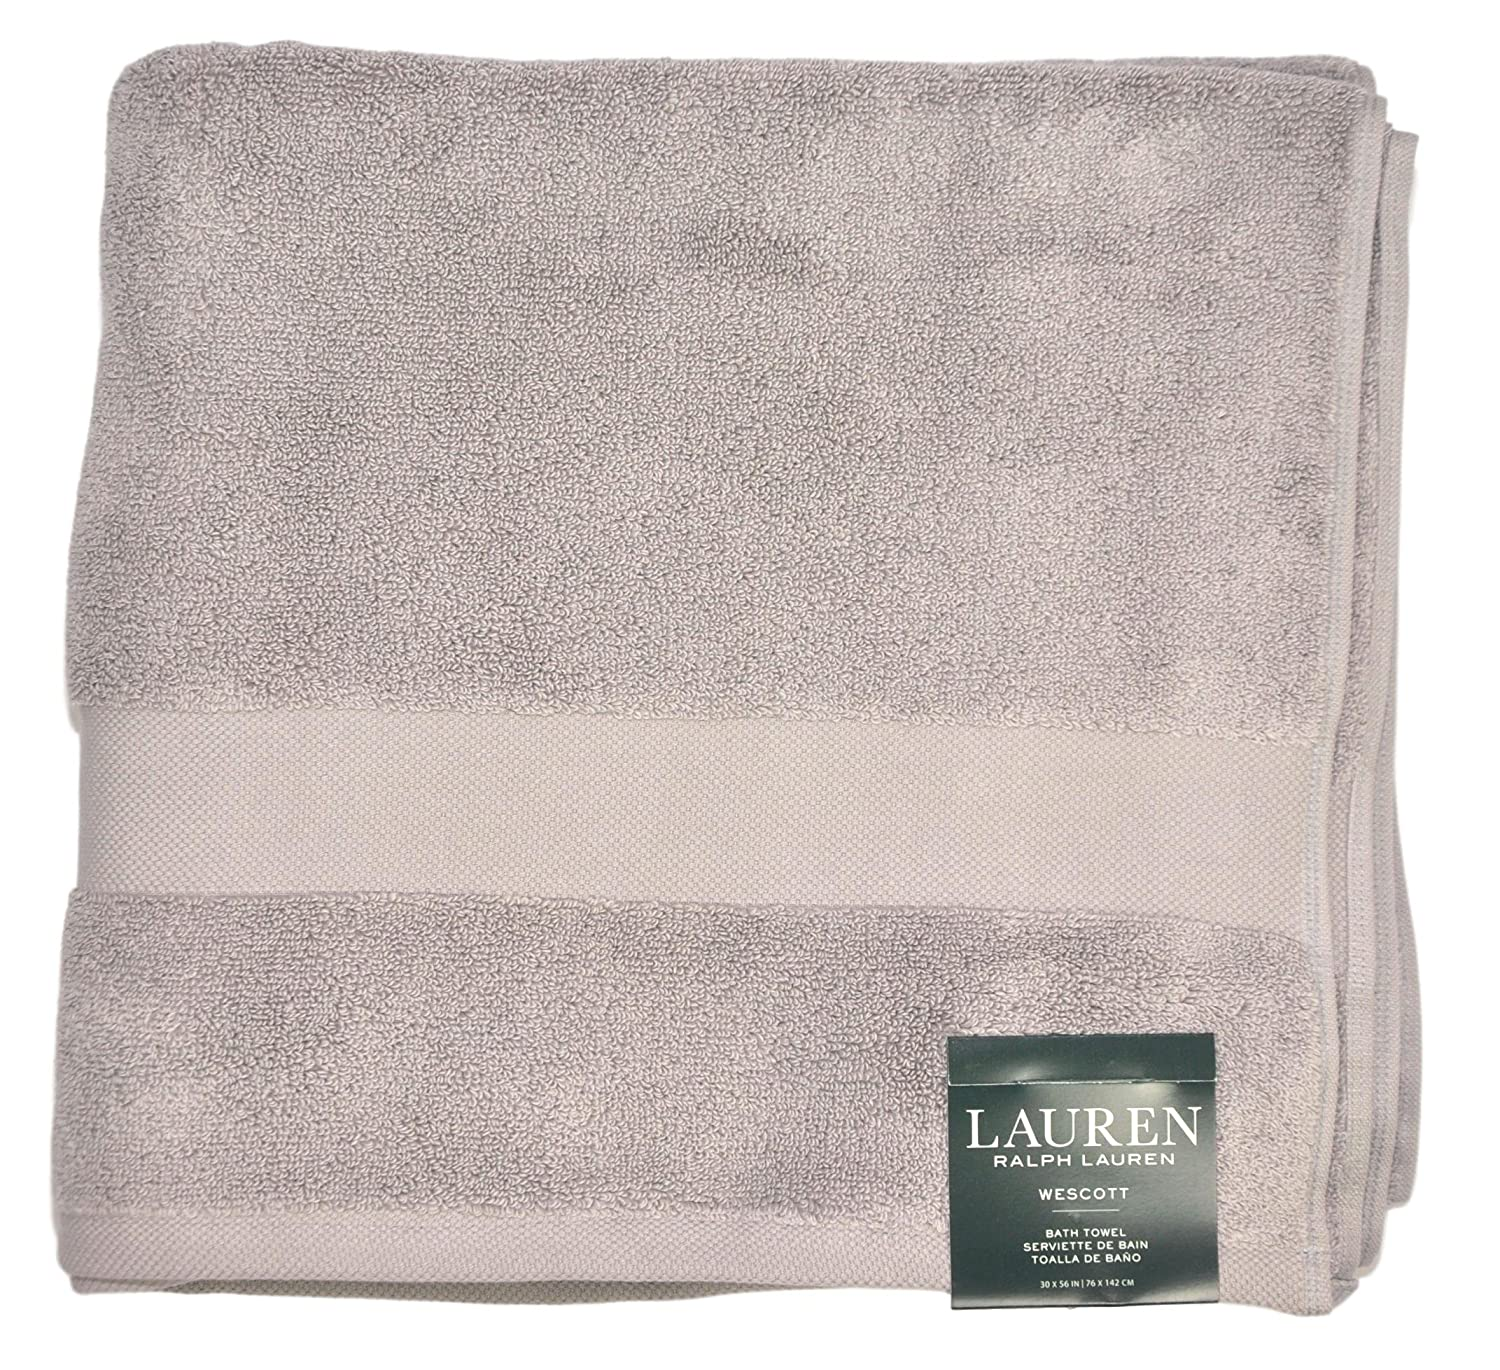 Amazon.com: Ralph Lauren Wescott Luxurious Cotton Bath Towel, 56